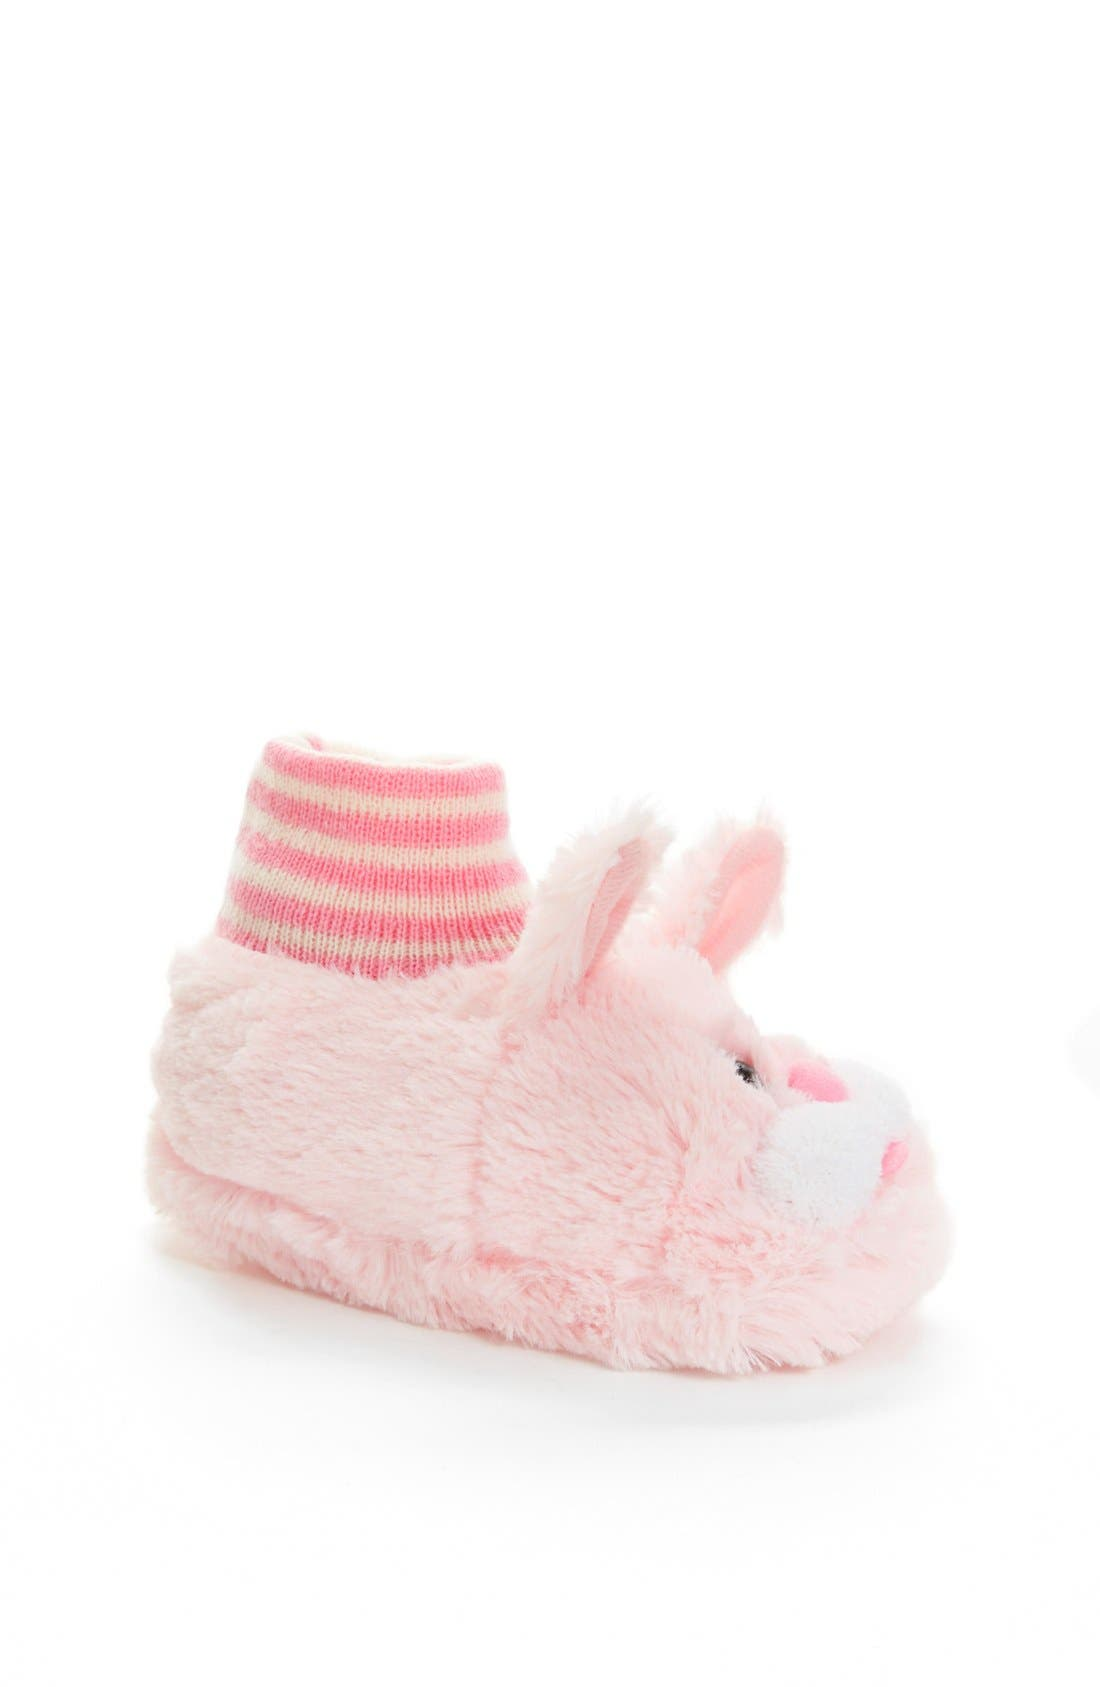 Main Image - Nordstrom Bunny Slippers (Walker, Toddler & Little Kid)